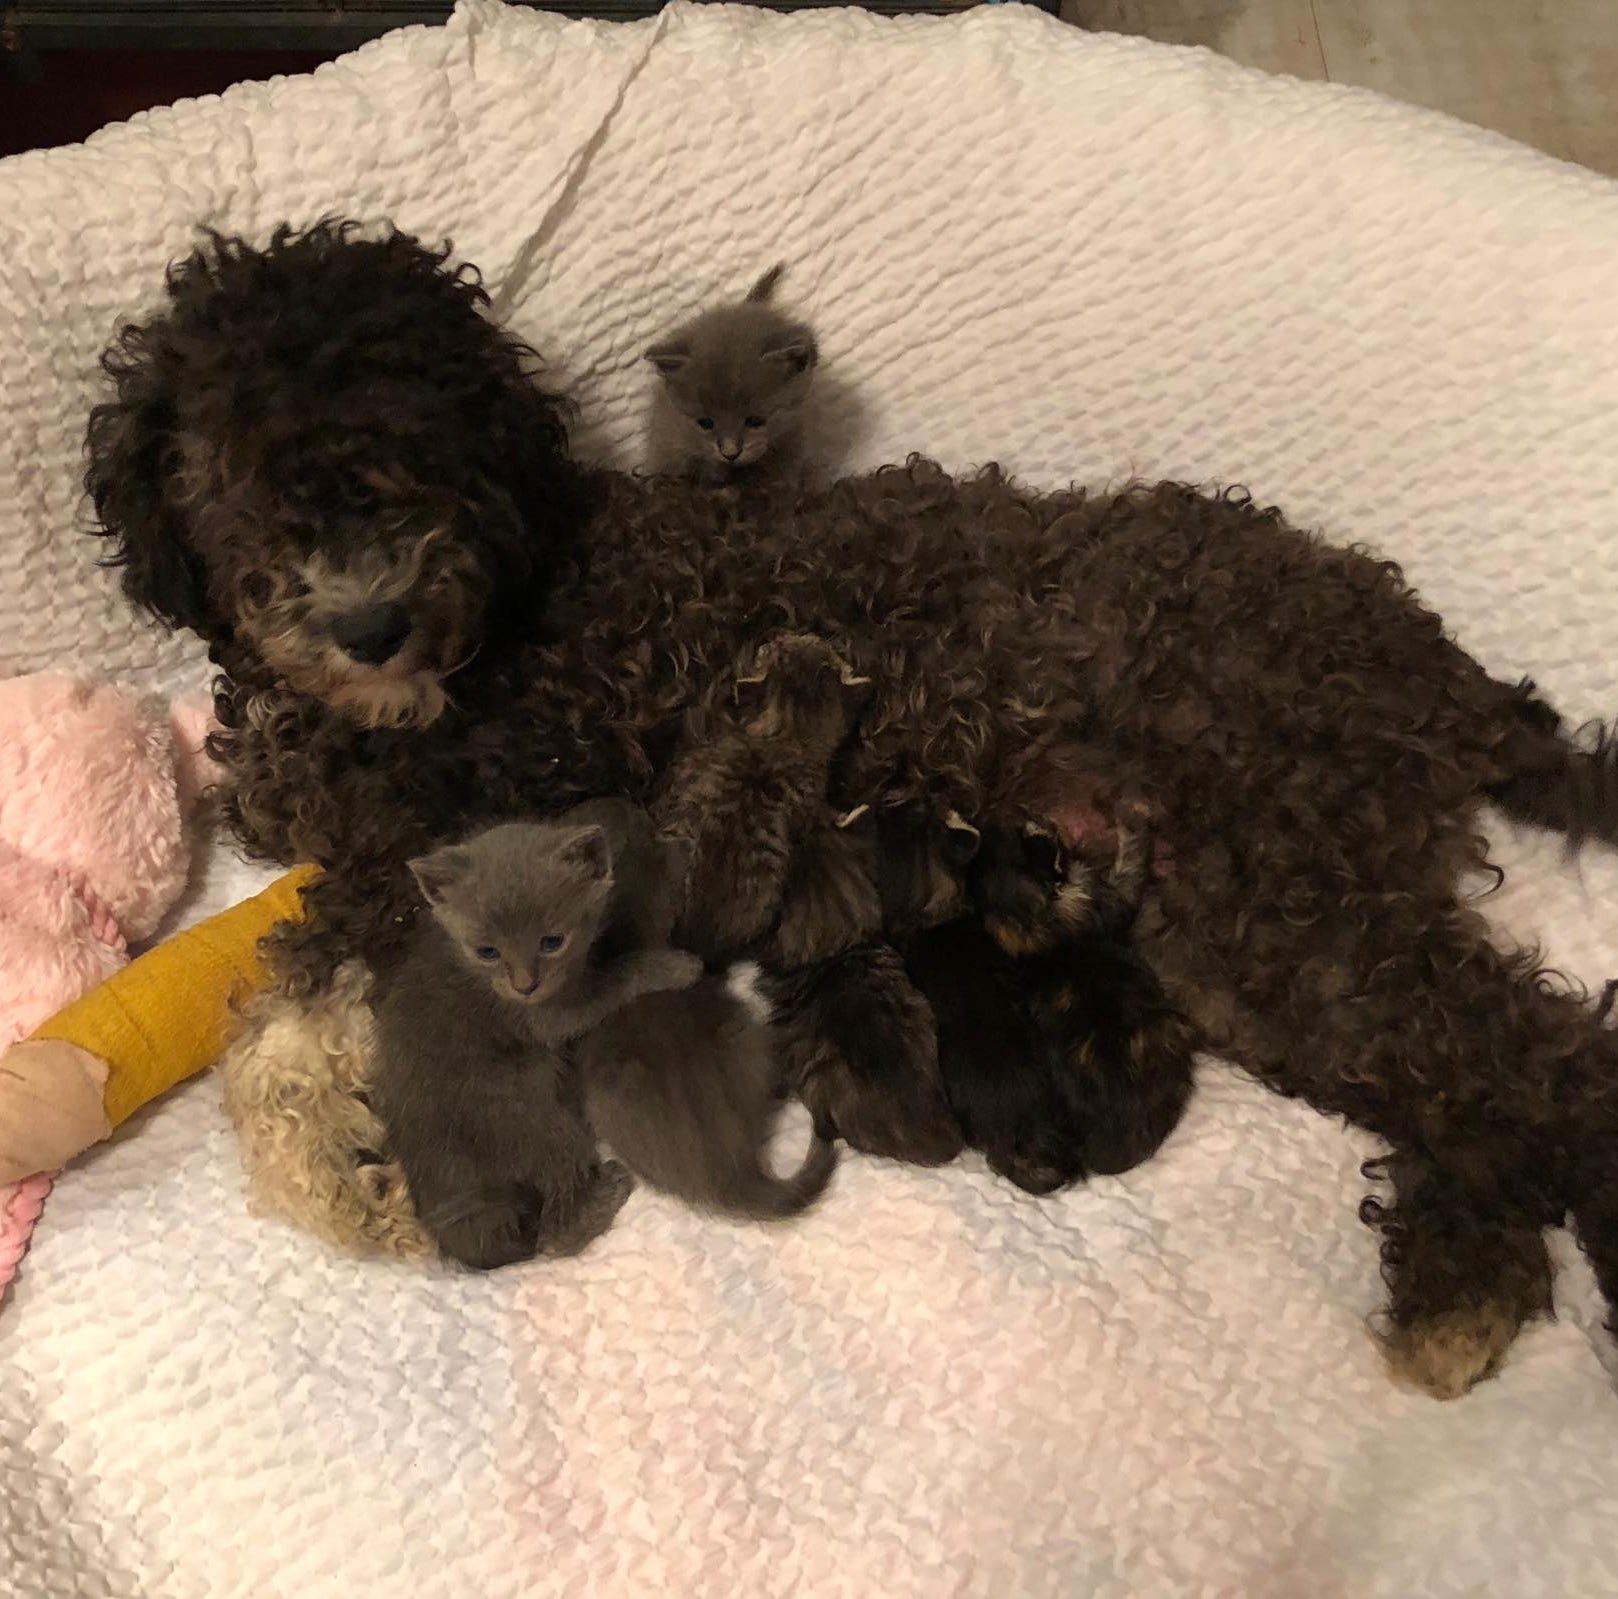 Injured dog took care of kittens but needs surgery and you can donate